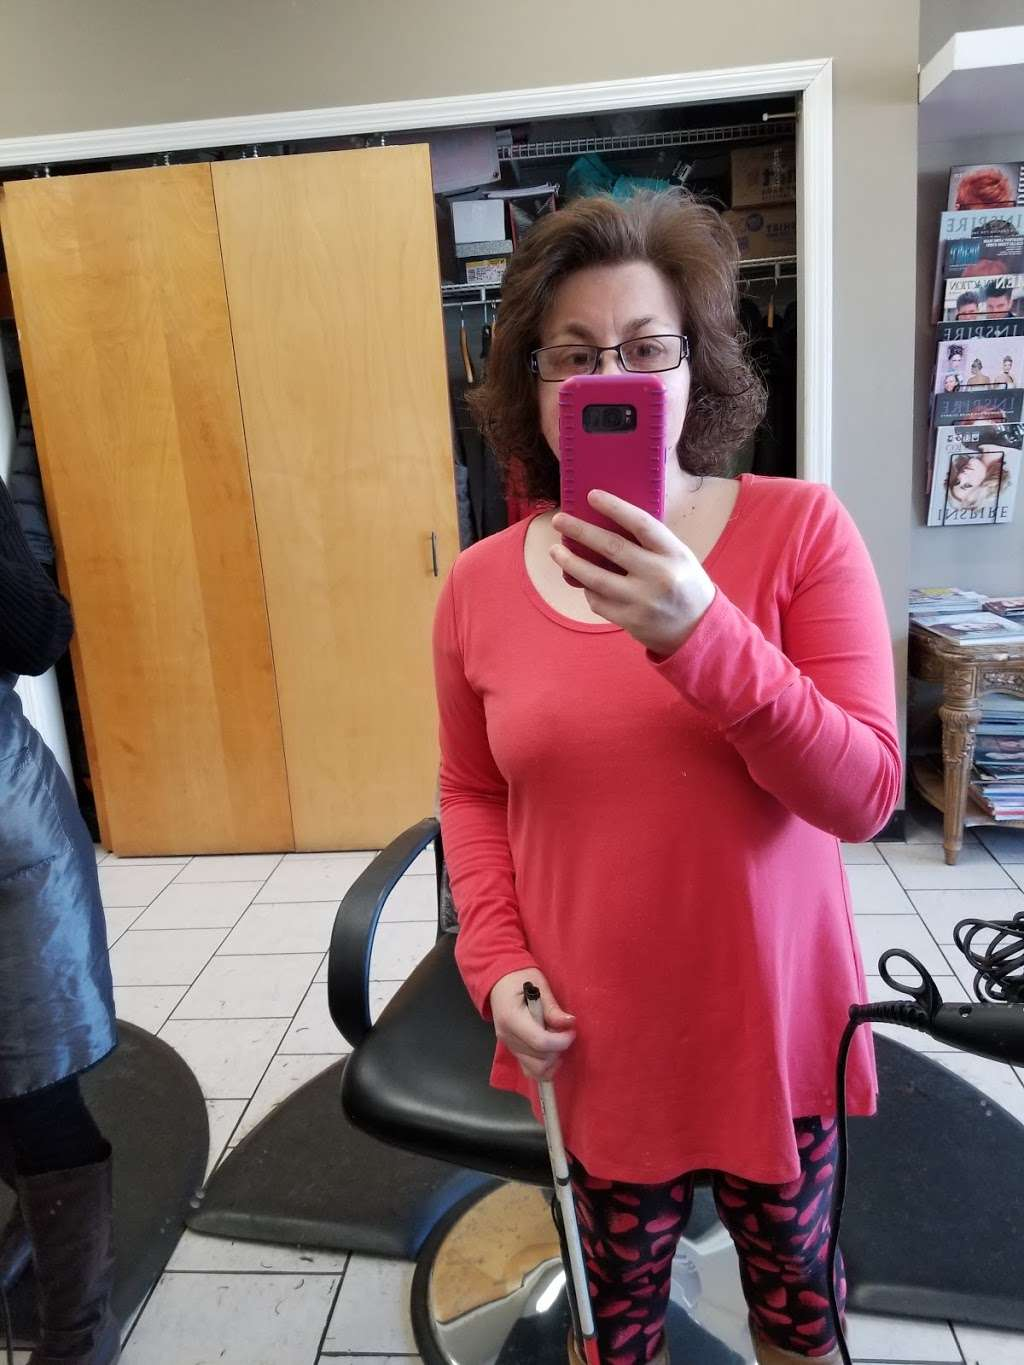 All In One Salon - hair care    Photo 1 of 1   Address: 234 Jericho Turnpike, Floral Park, NY 11001, USA   Phone: (516) 326-1461